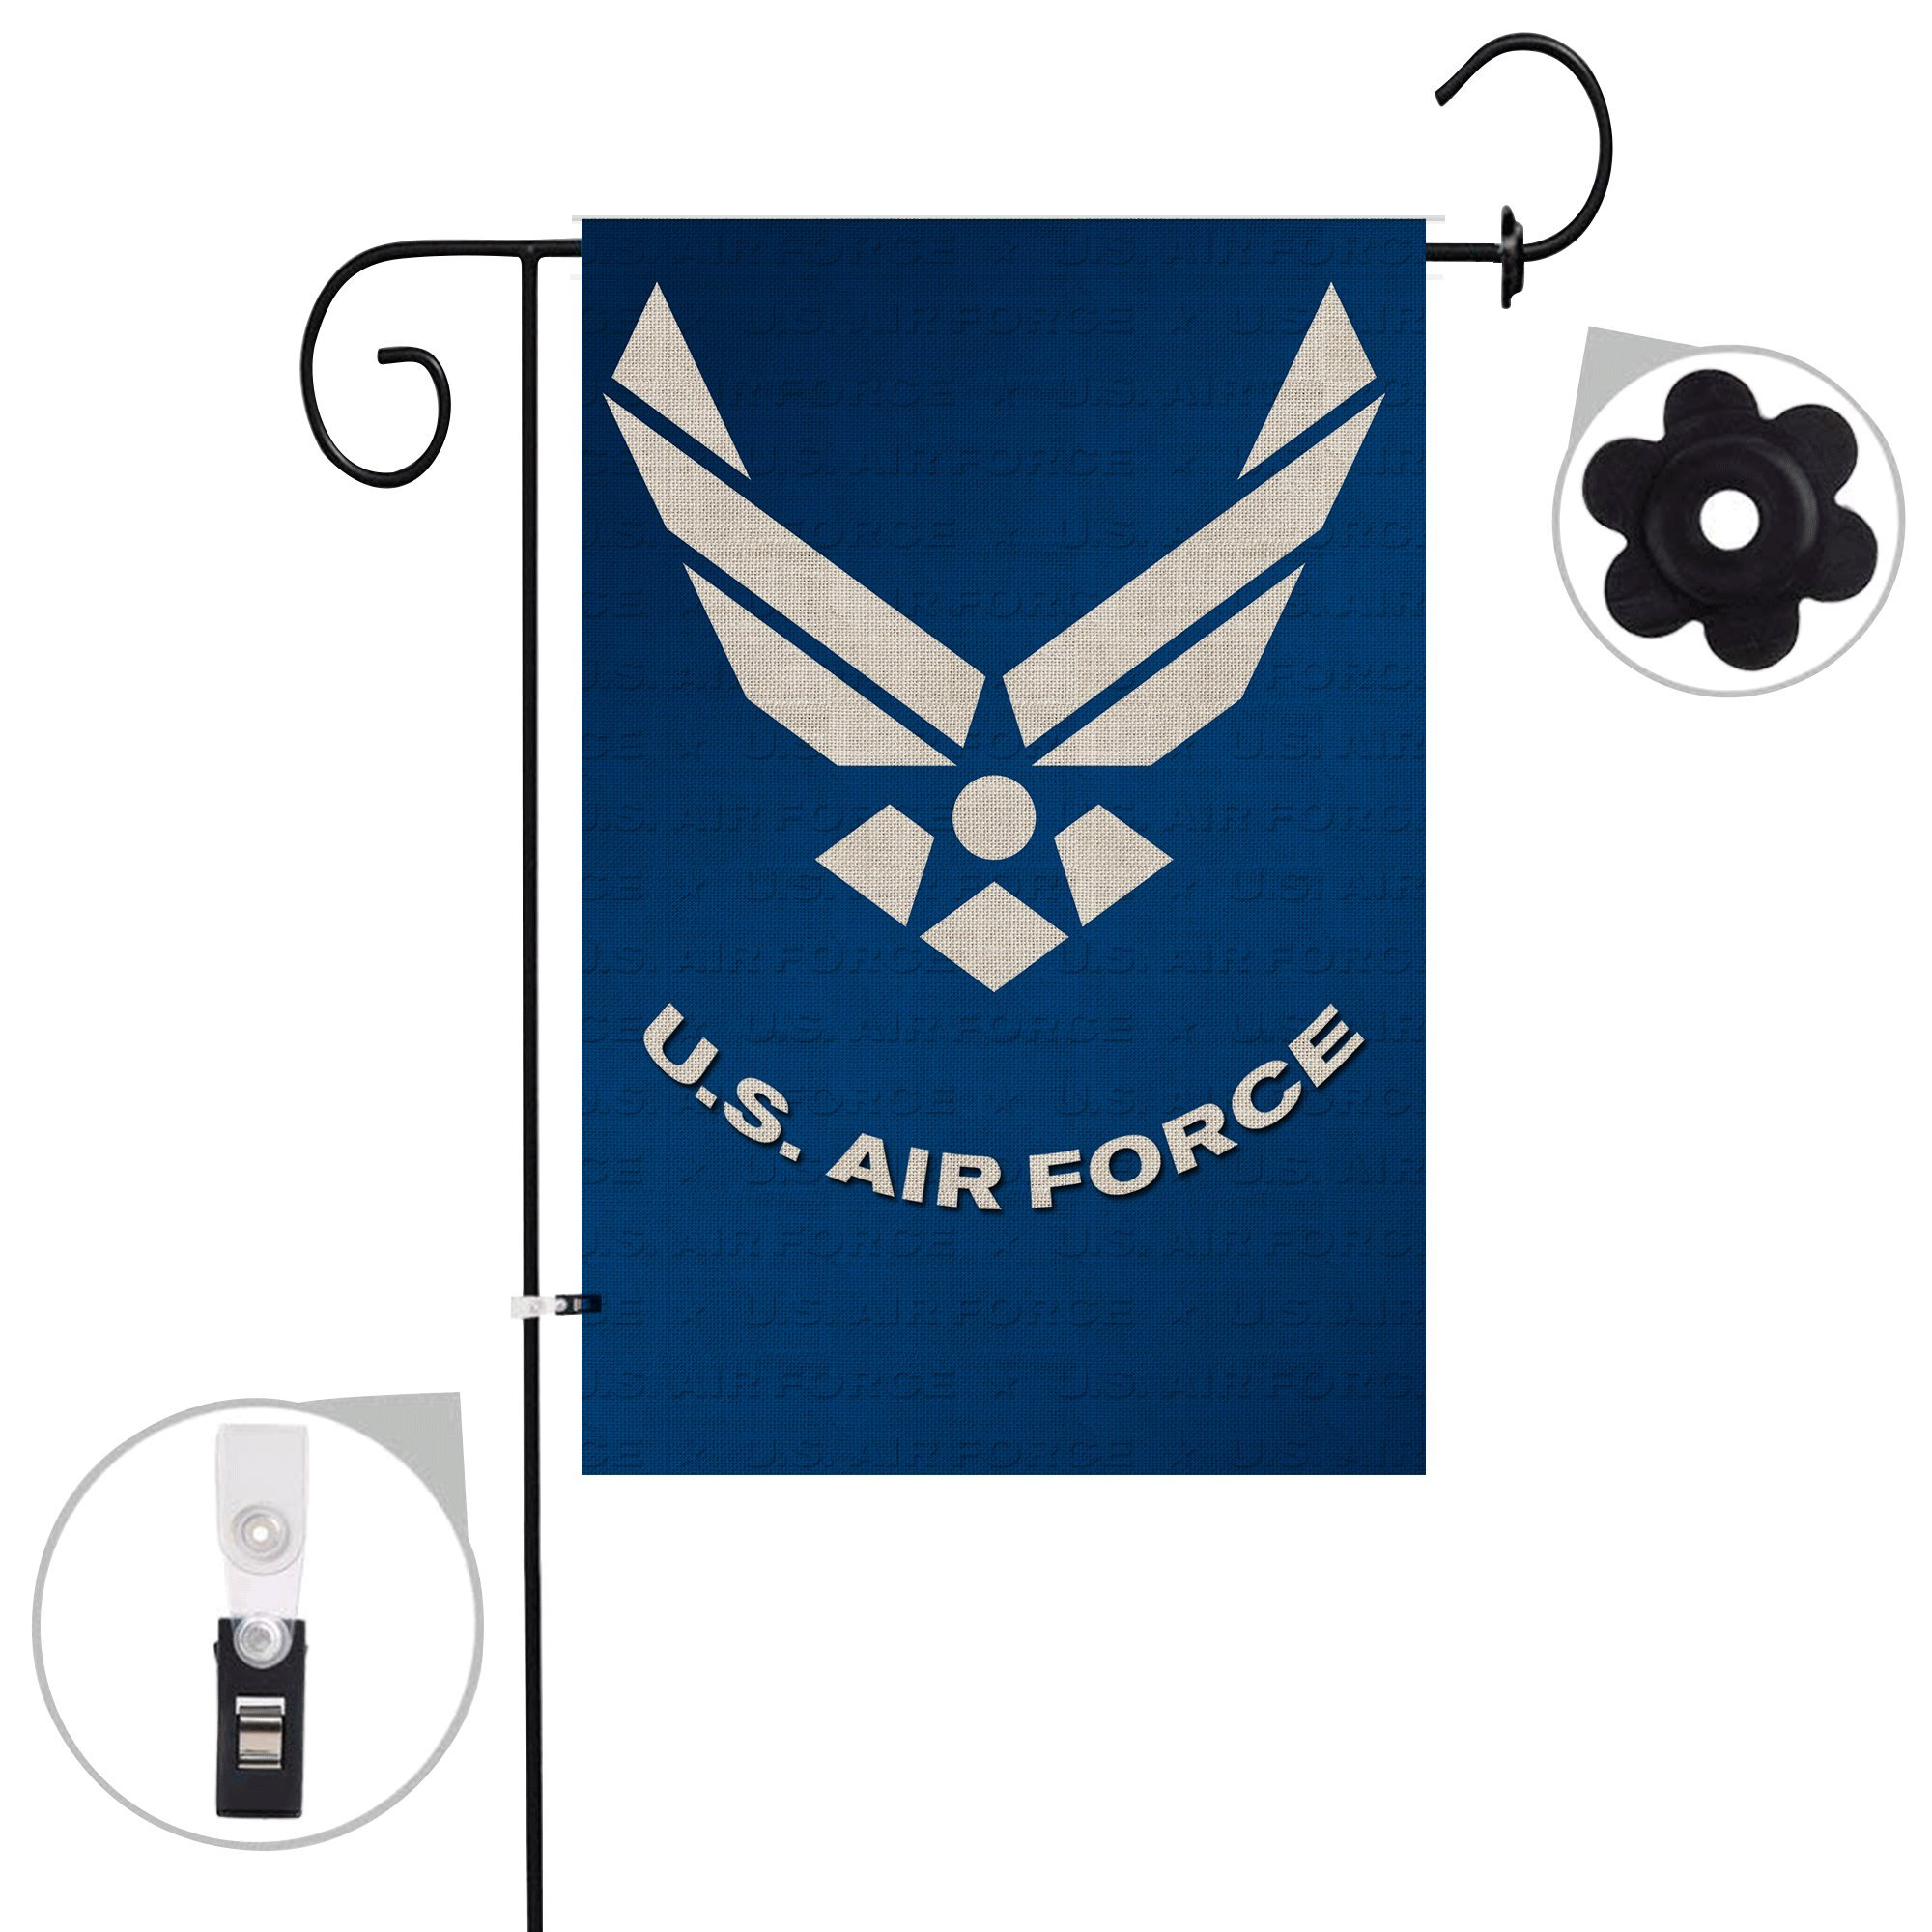 Bonsai Tree burlap us Air Force Spring Garden Flags 12x18 prime double-sided yard Outdoor Decorative flag banner Stopper & Anti-wind Clip